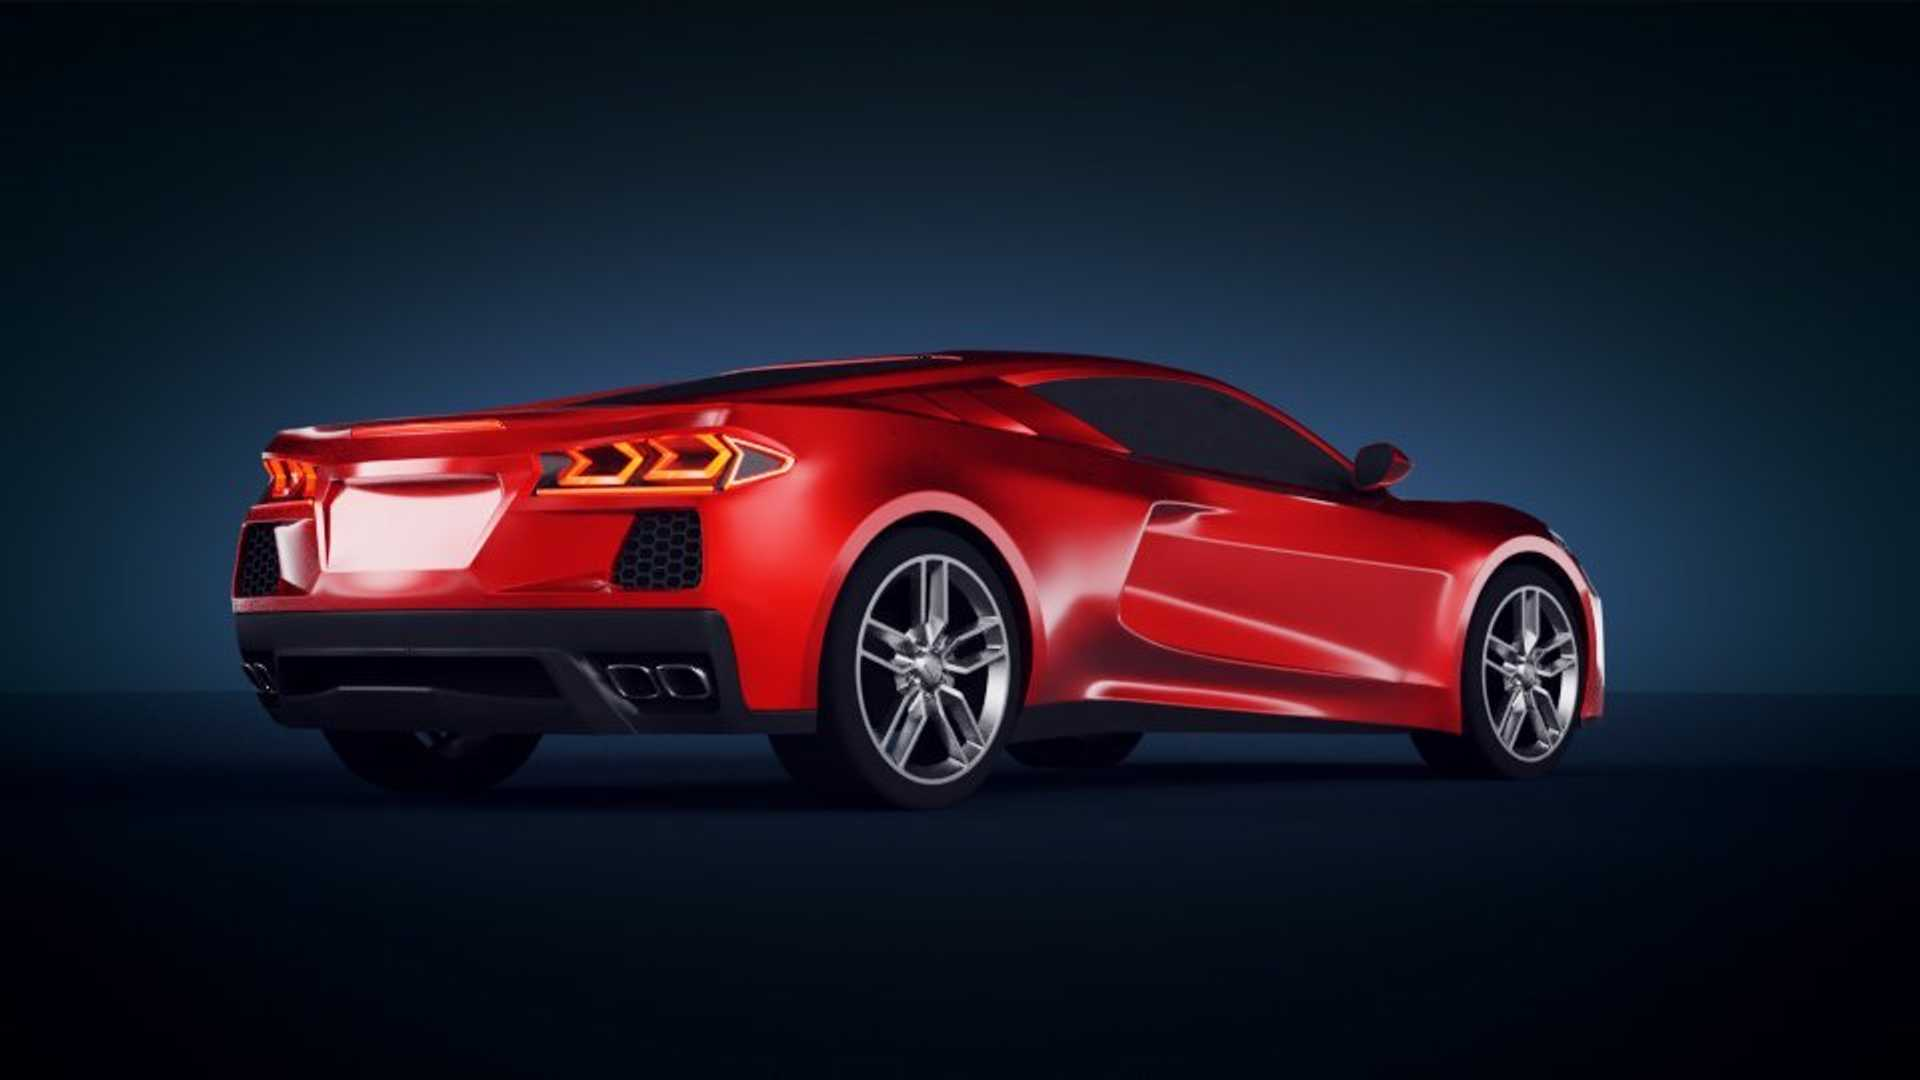 2020 Chevy Corvette Model Codes May Offer New Clues